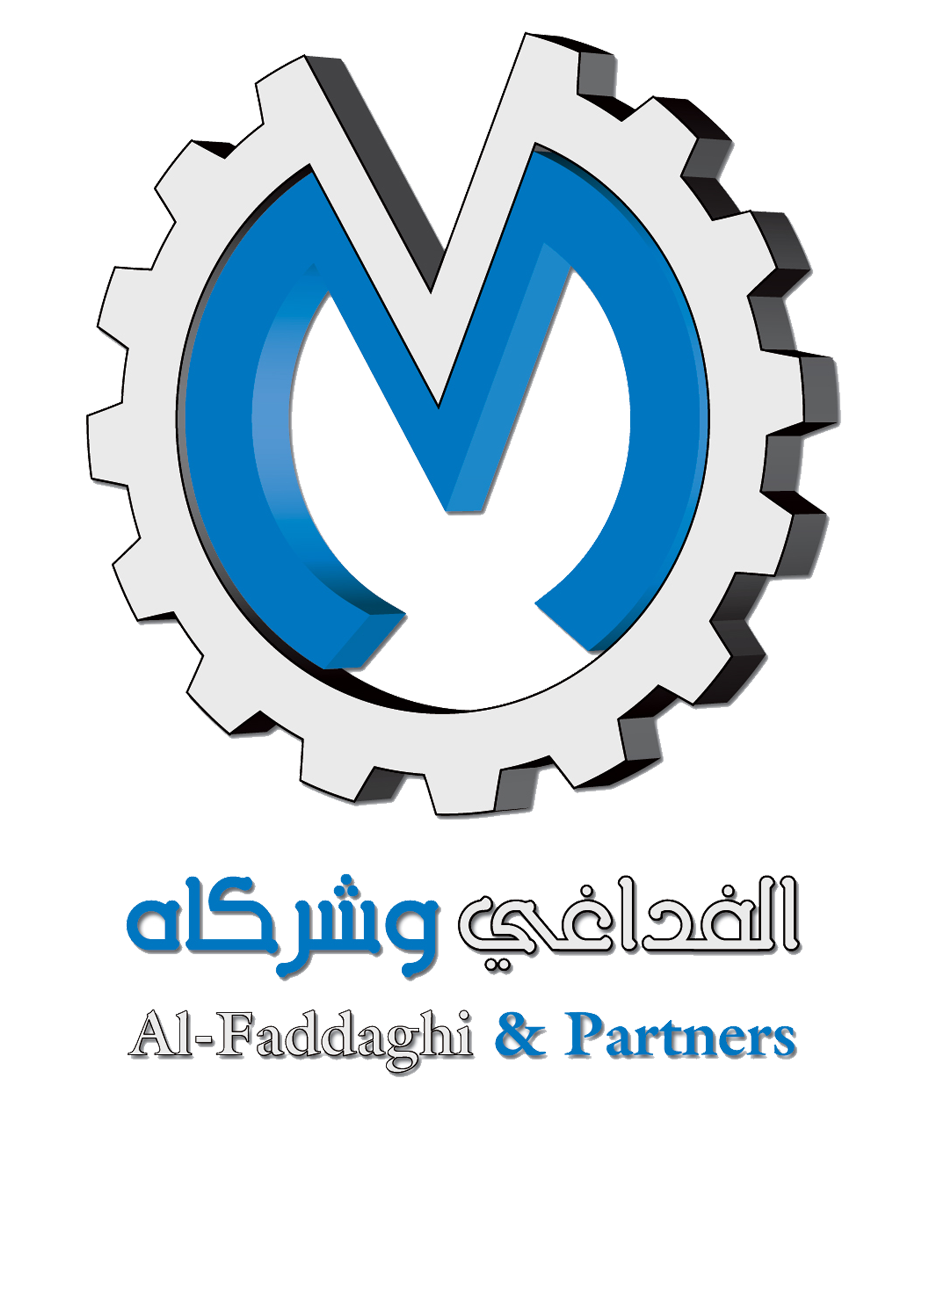 Alfaddaghi partners group of companies was established in 1987 to manufacture and assemble power packs generator sets pumps irrigation systems and related products biocorpaavc Image collections